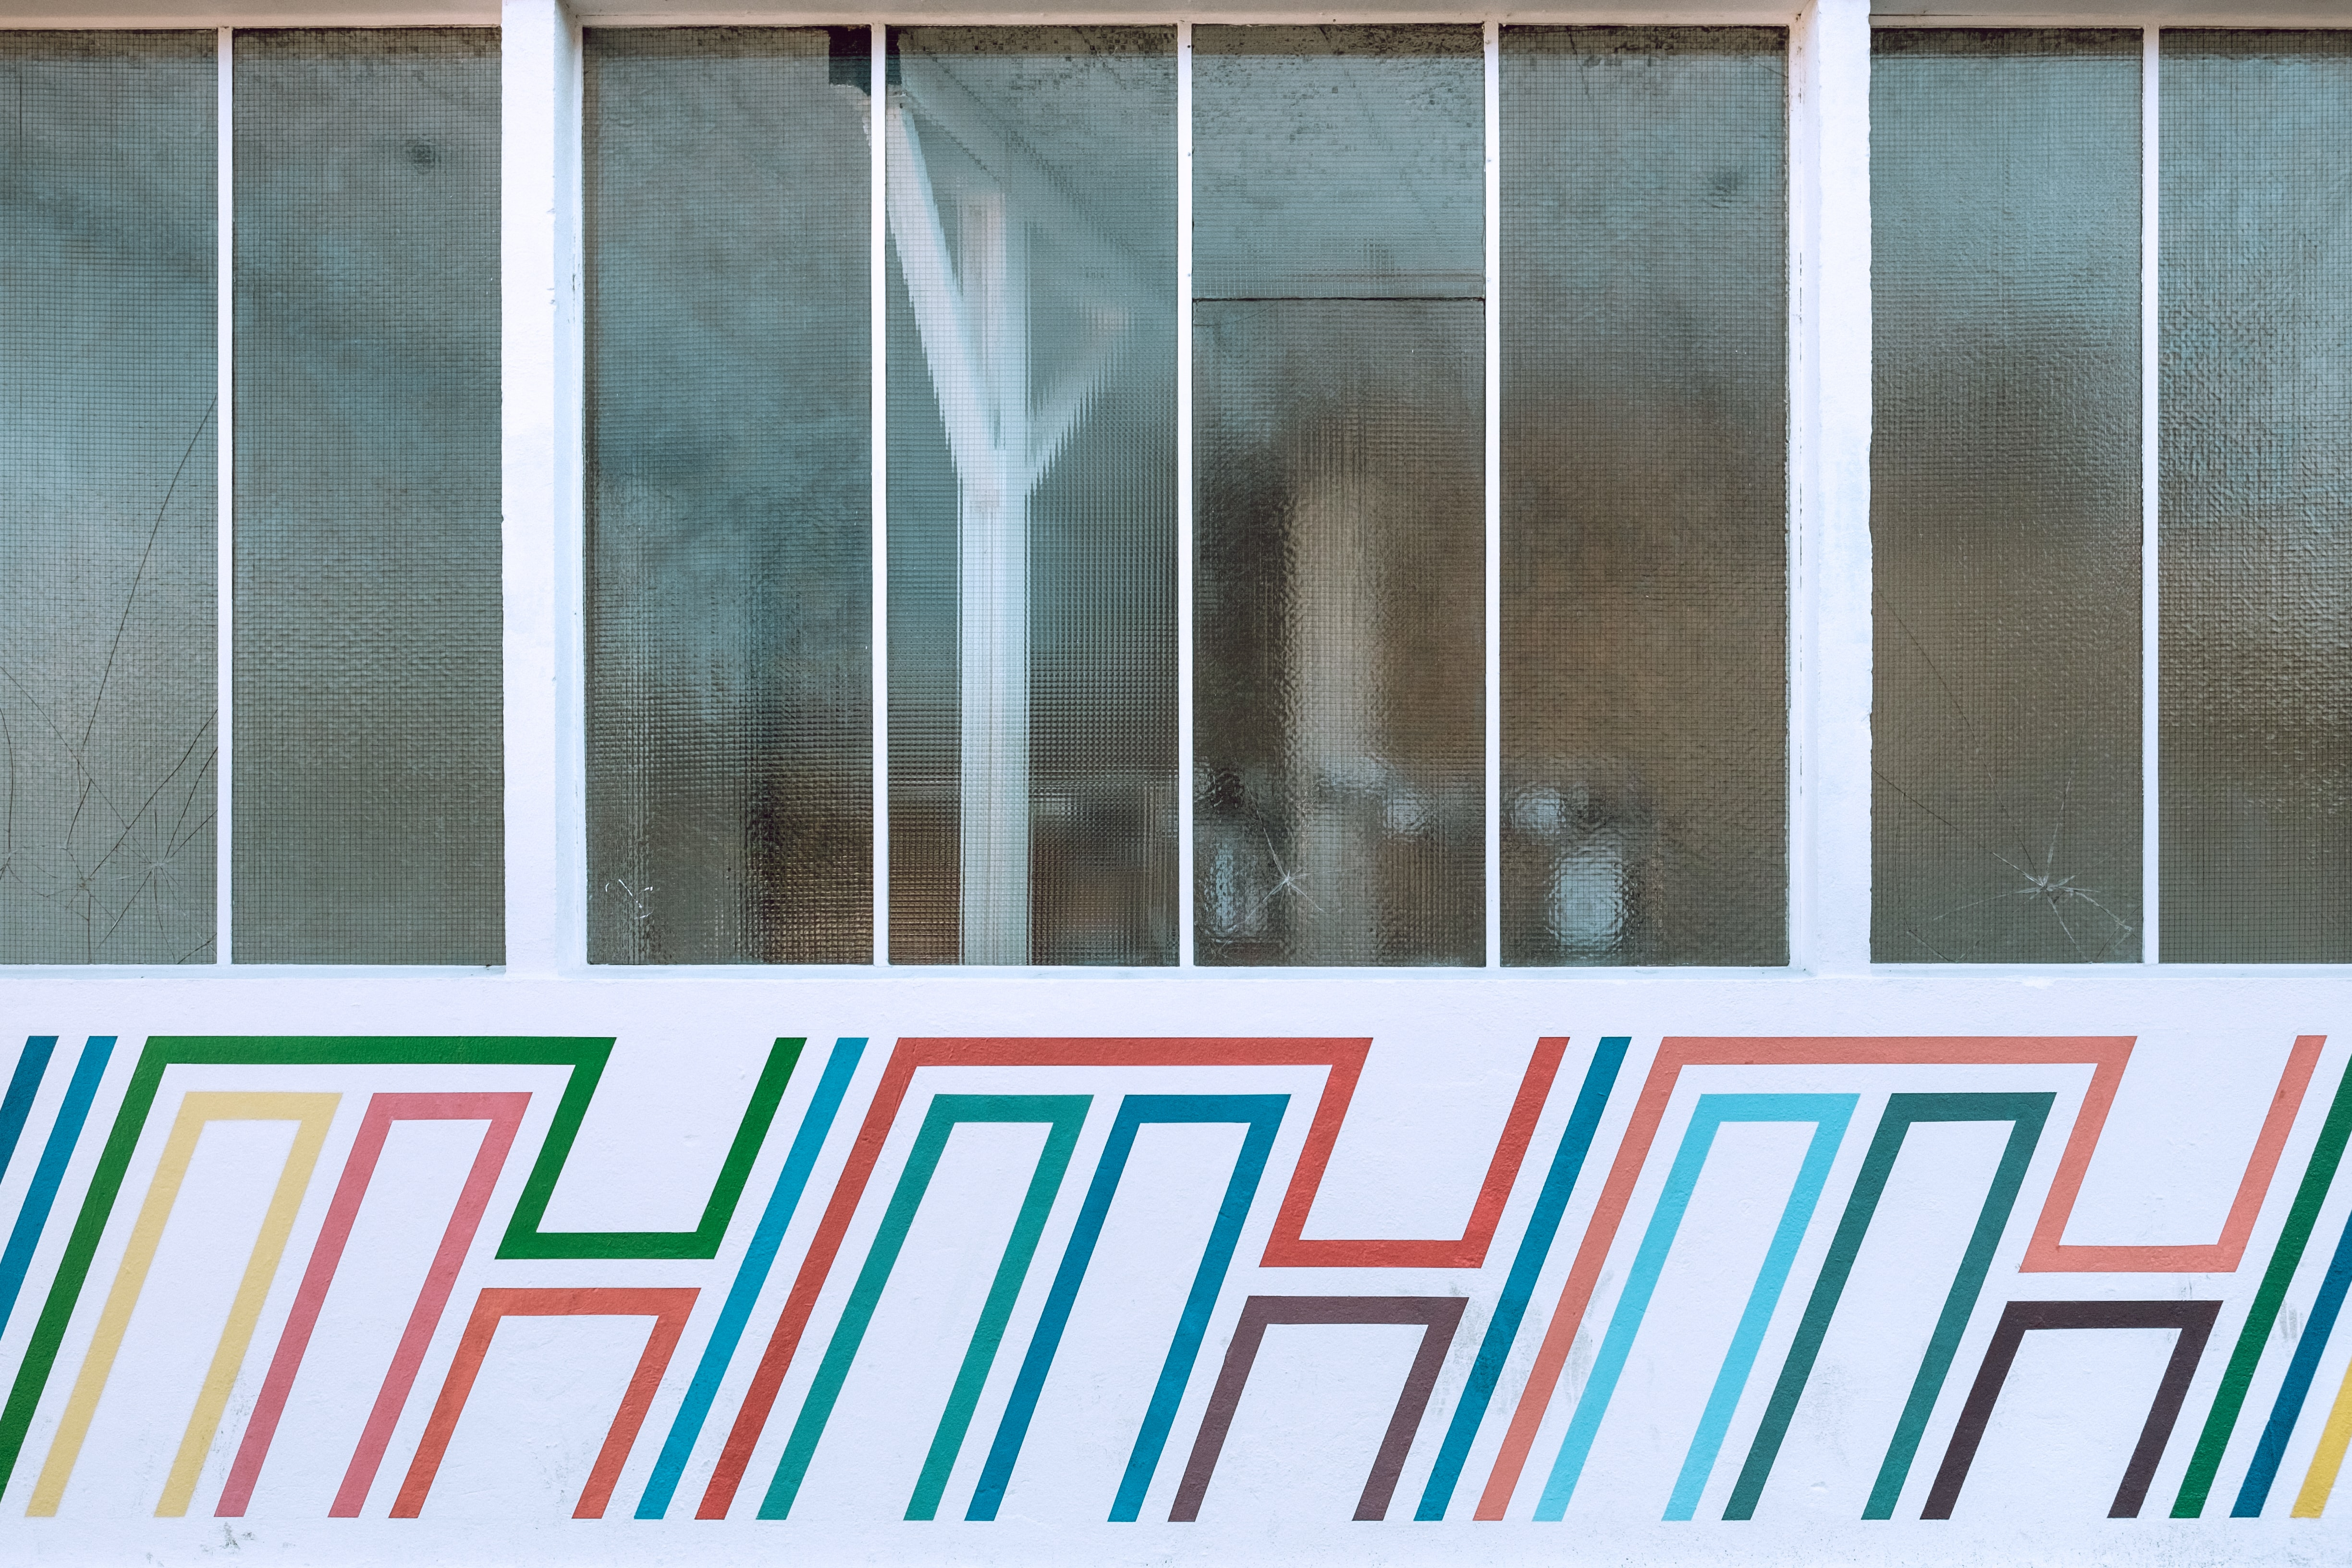 white and multicolored store signage